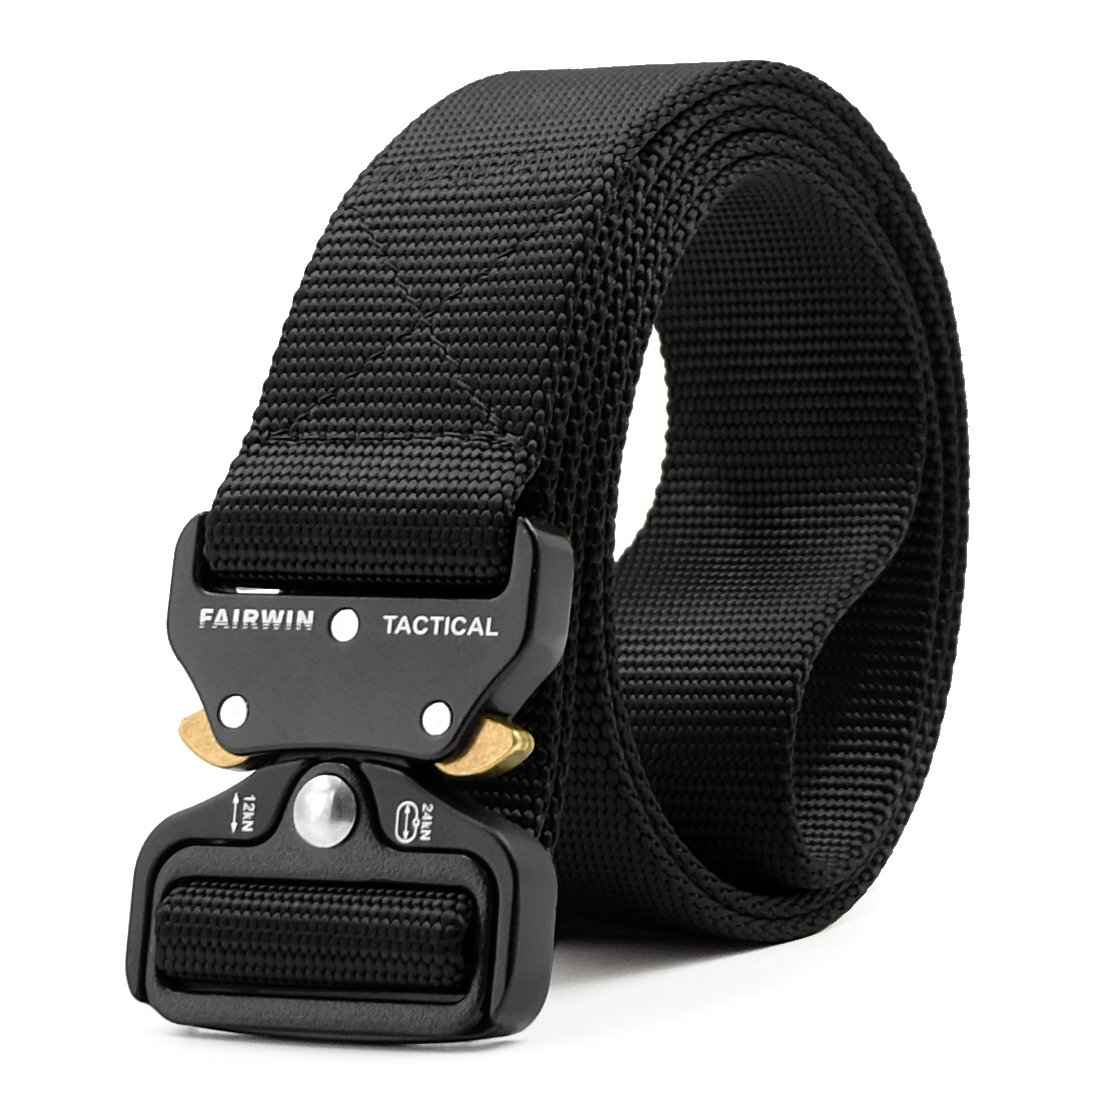 Fairwin Tactical Belt, Military Style Webbing Riggers Web Belt with Heavy-Duty Quick-Release Metal Buckle (Black, XL 46''-50'') by Fairwin (Image #1)